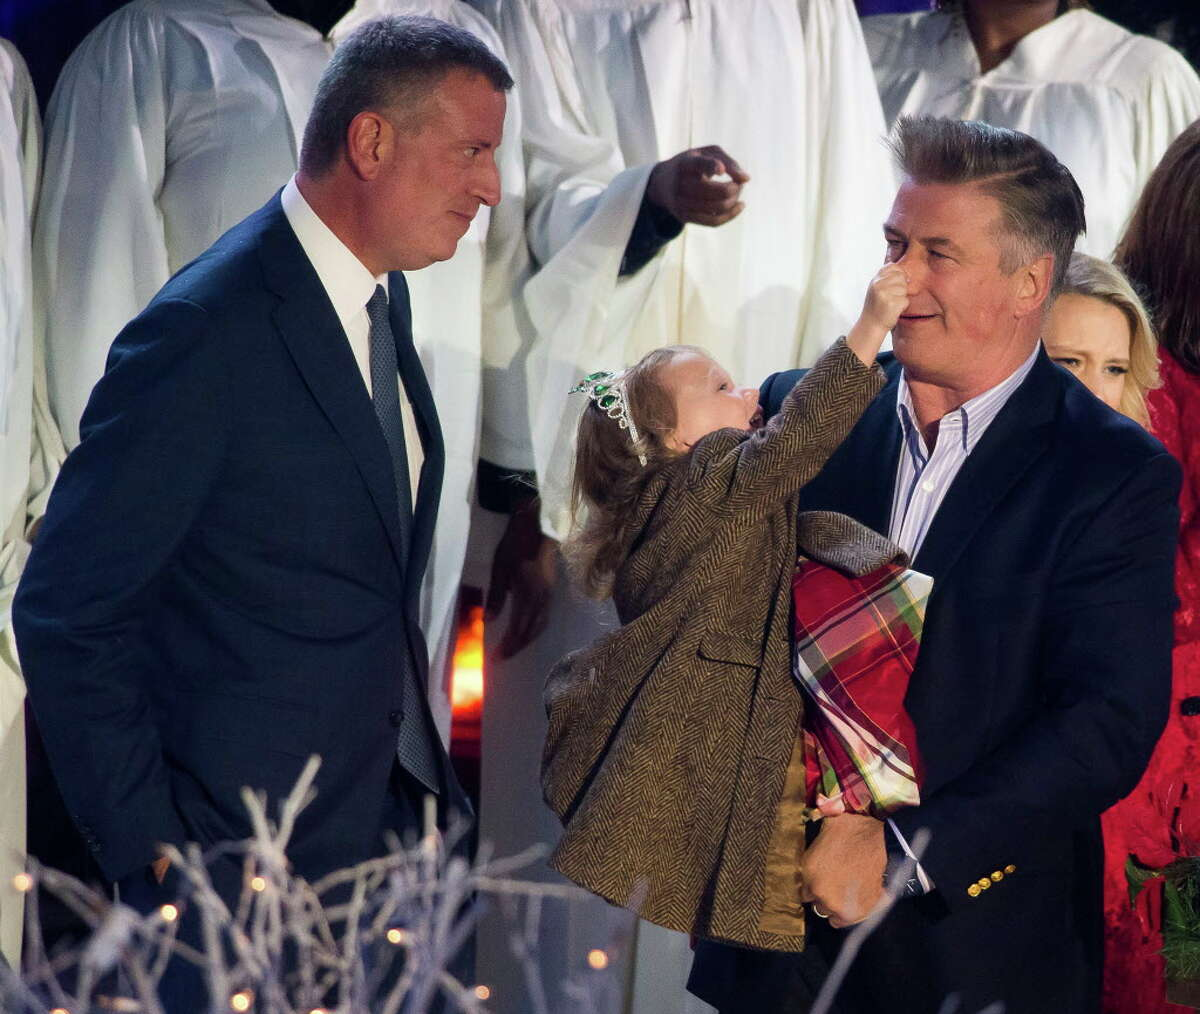 Mayor Bill de Blasio, left, Carmen Baldwin and Alec Baldwin attend the 84th Annual Rockefeller Center Christmas Tree lighting ceremony on Wednesday, Nov. 30, 2016, in New York. (Photo by Charles Sykes/Invision/AP) ORG XMIT: NYCS106